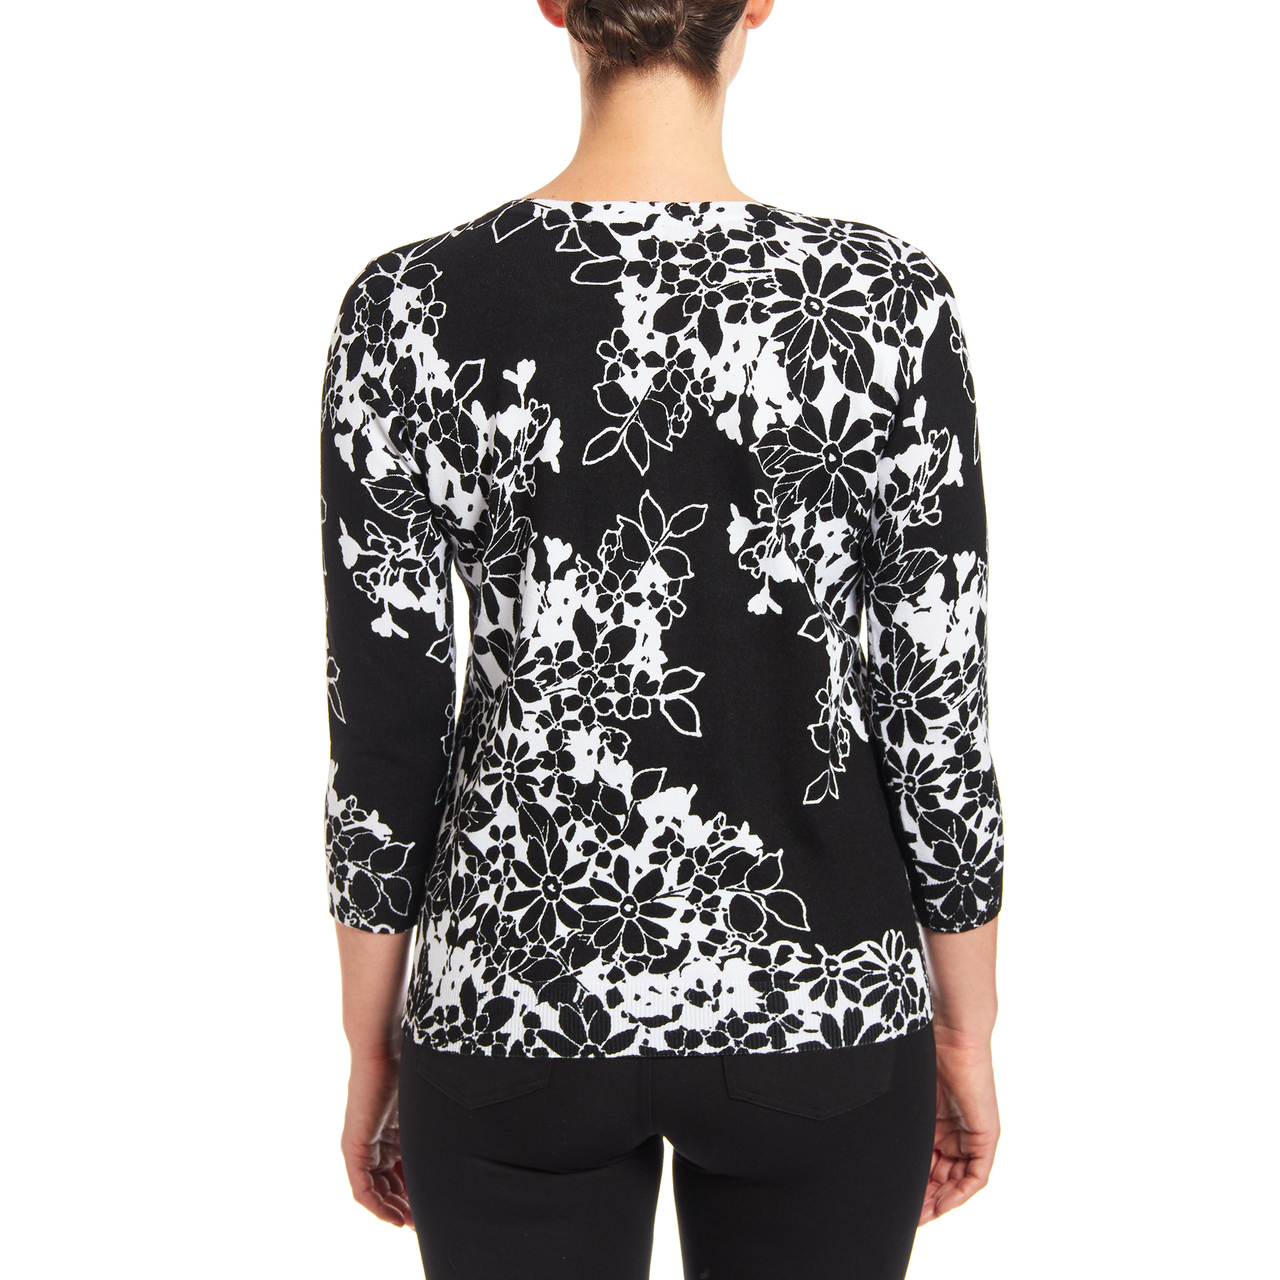 Floral Button-up Cardigan in Daisy Drama Black